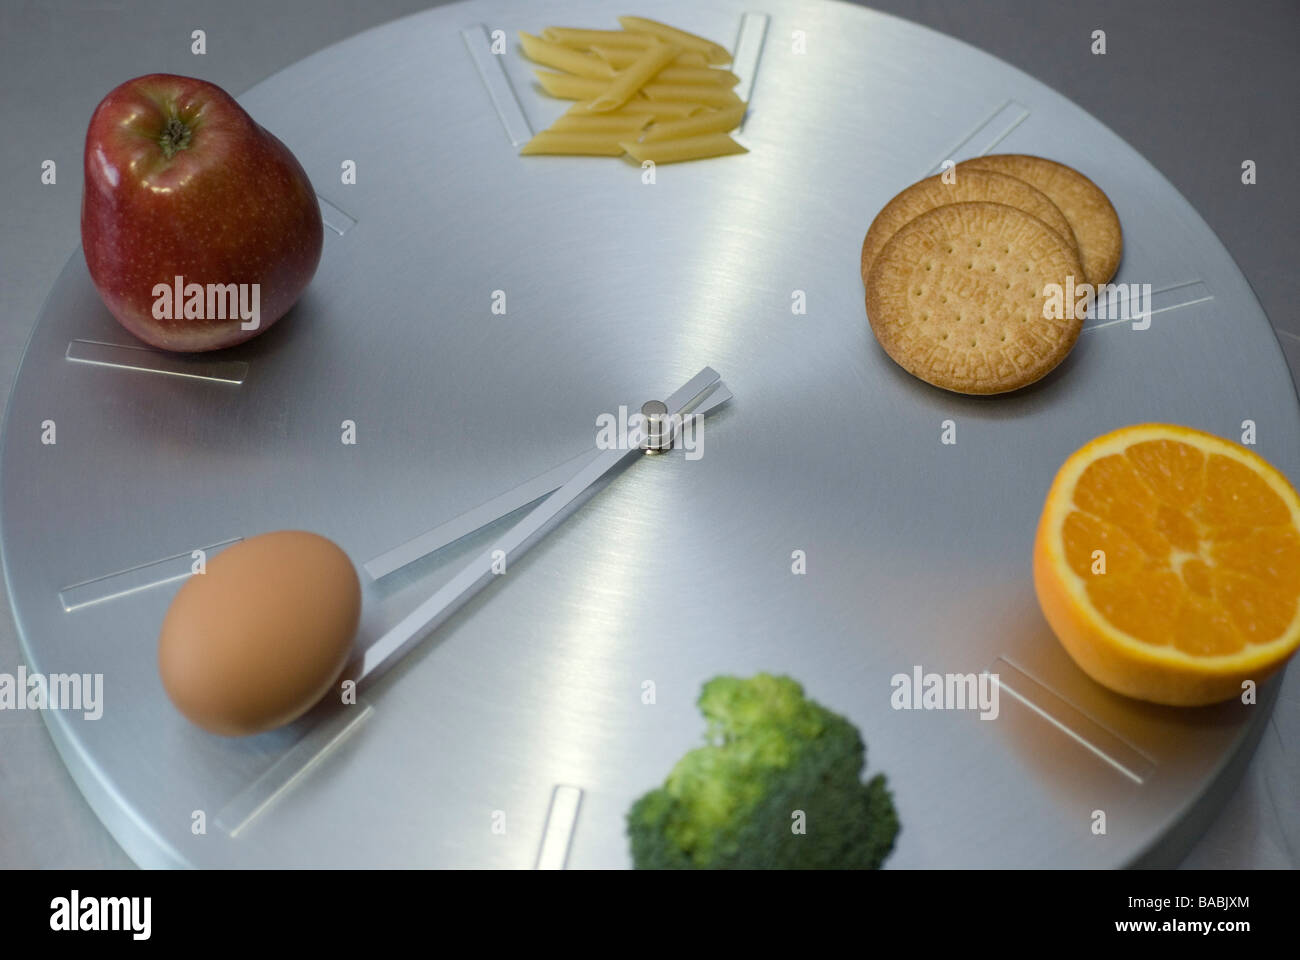 clock food control- pasta, biscuits, orange, apple, egg and broccoli - Stock Image